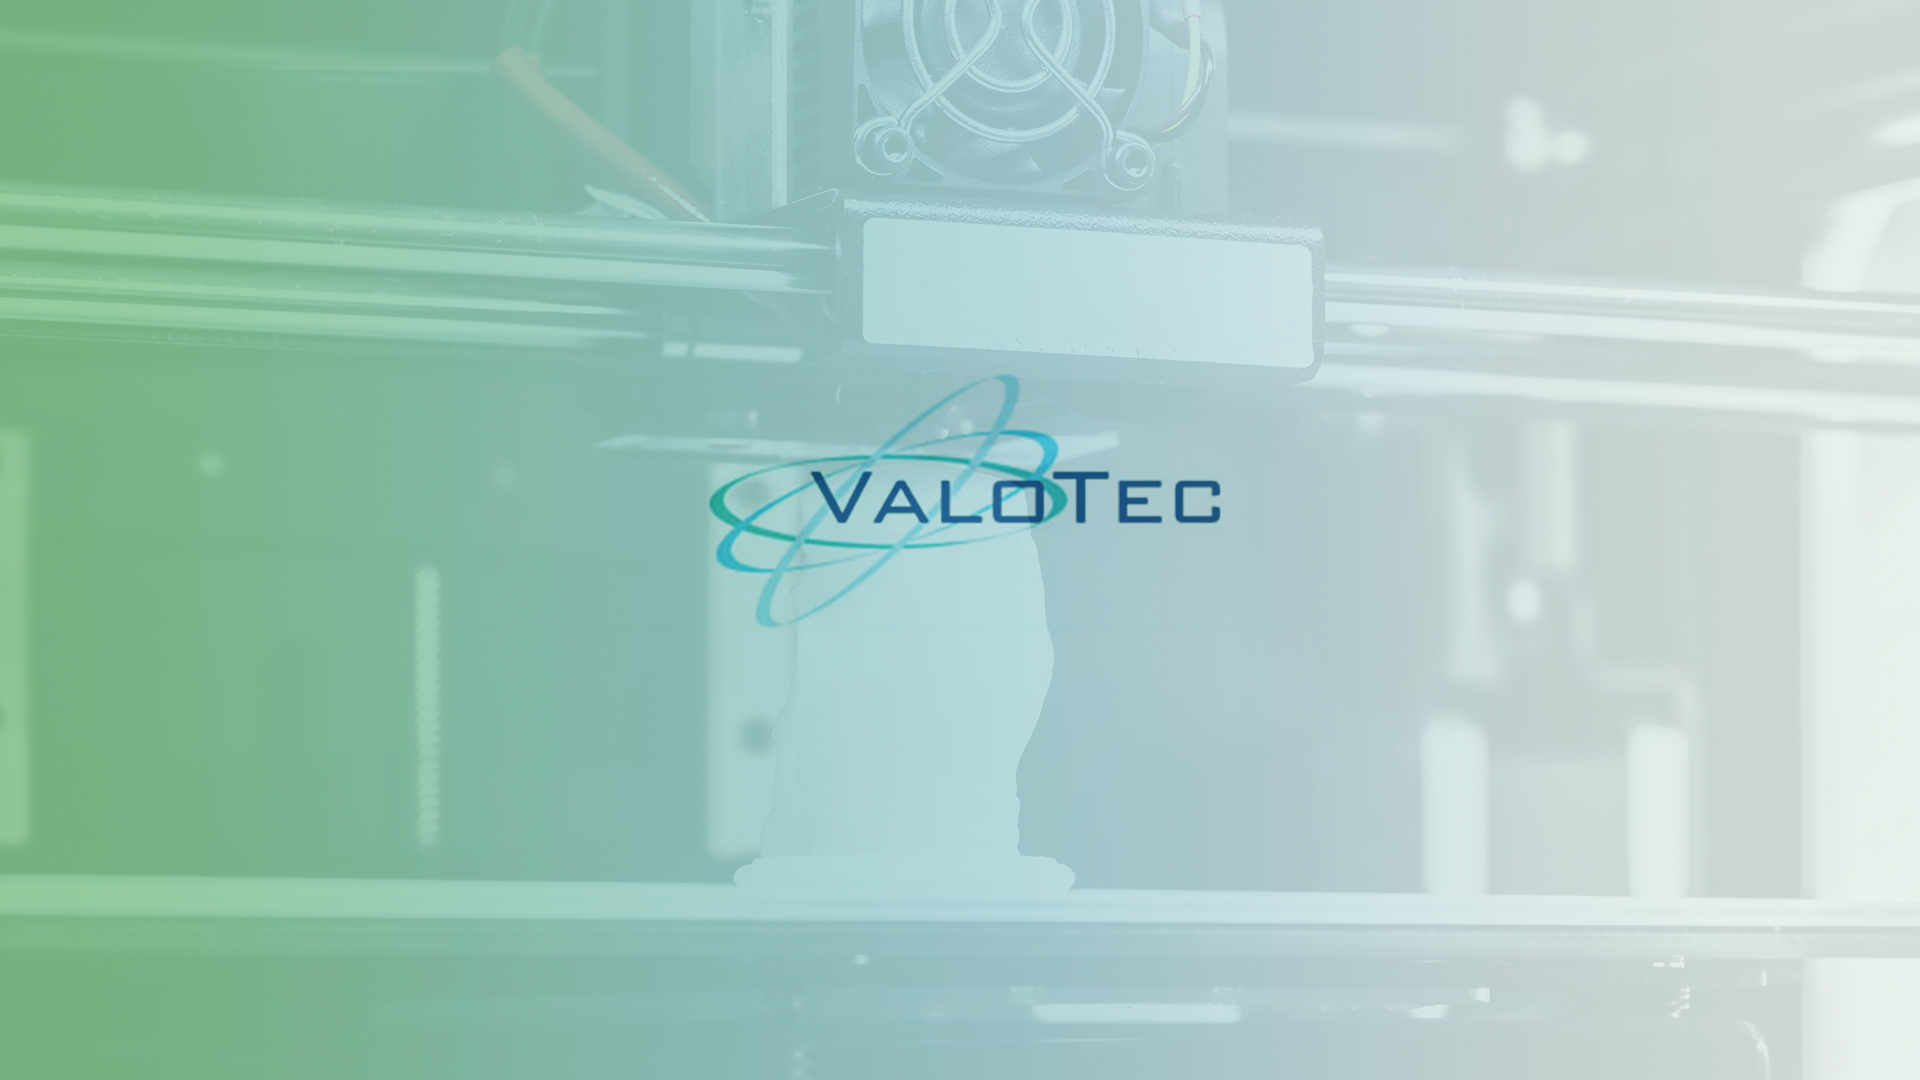 VALOTEC / MATRA ELECTRONICS: SIDE BY SIDE FOR HEALTHCARE